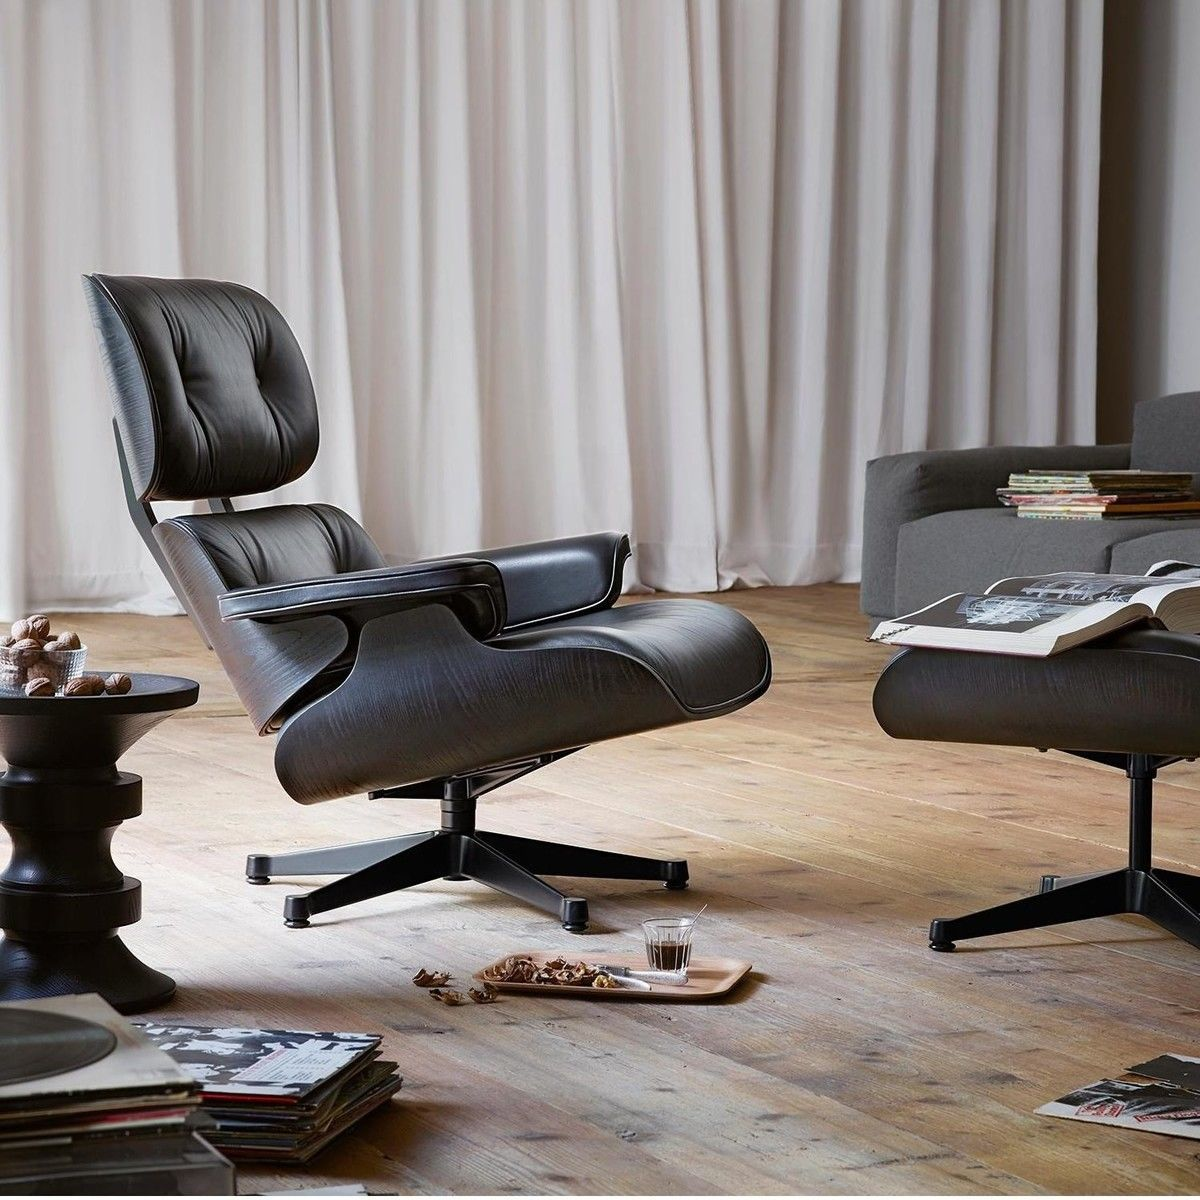 eames lounge chair ottoman vitra. Black Bedroom Furniture Sets. Home Design Ideas